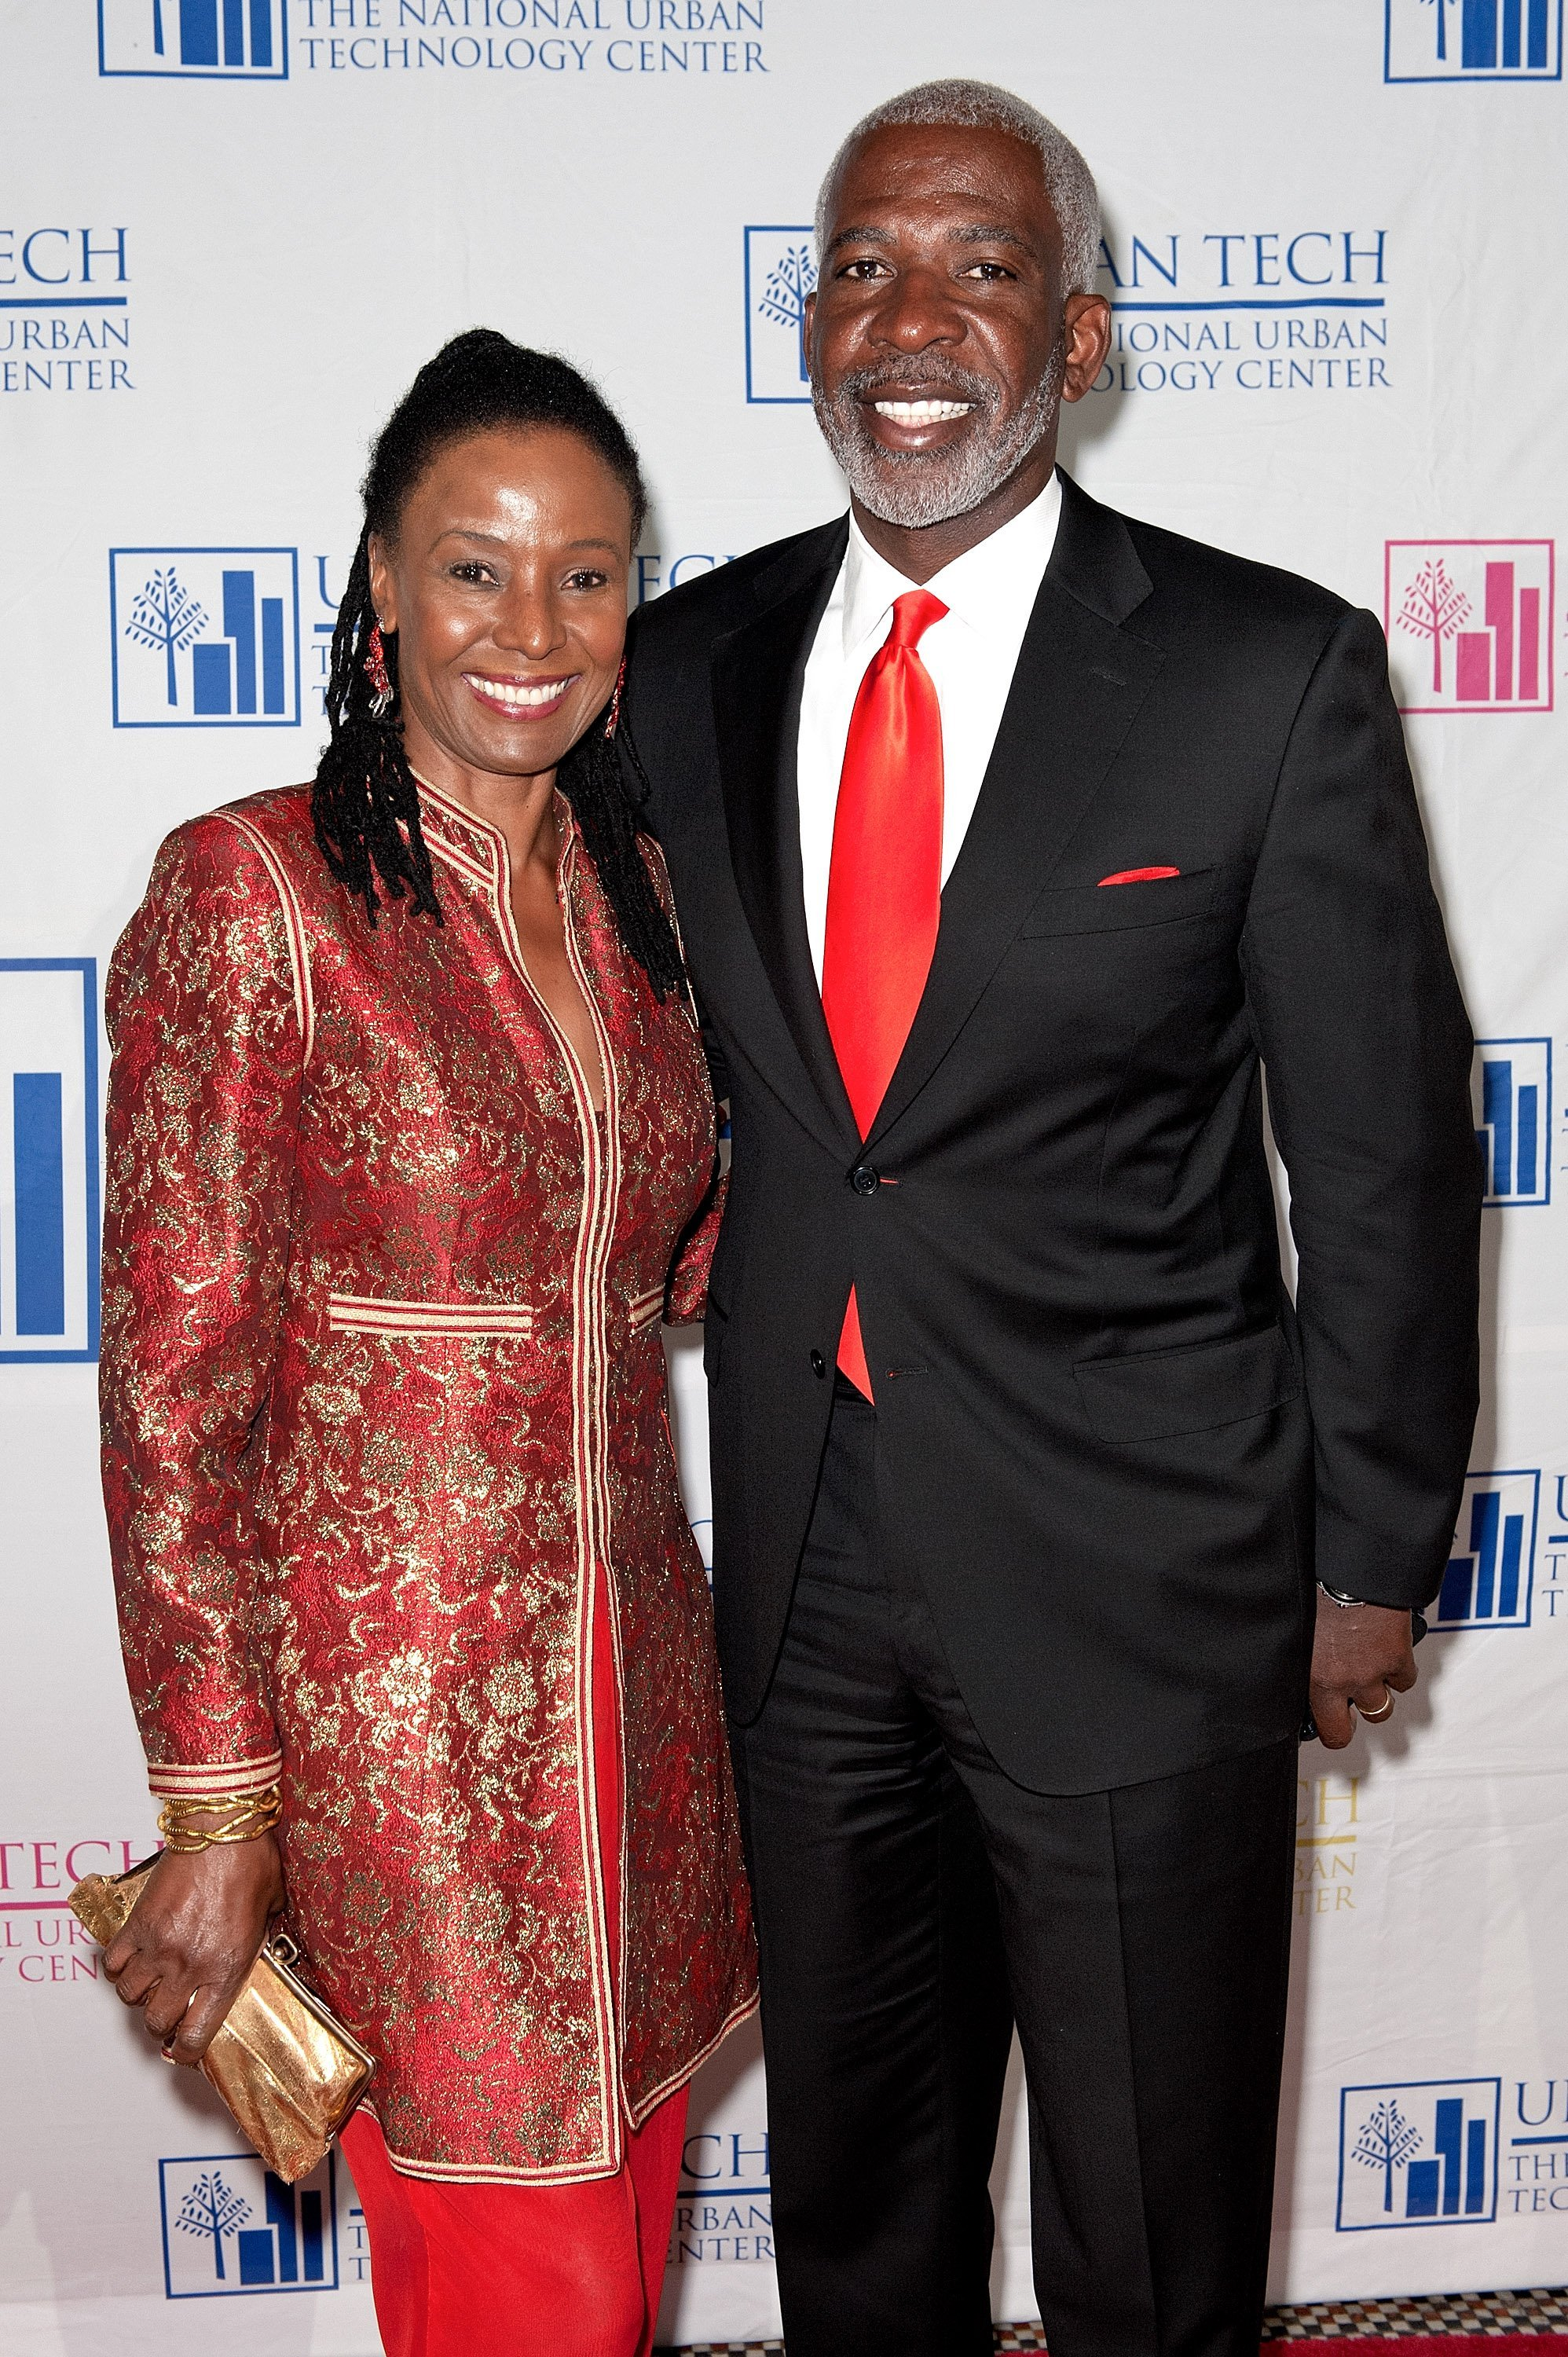 (Before the diagnosis)B. Smith & Dan Gasby at the 17th Annual National Urban Technology Center Gala in NYC on June 11, 2012. | Photo: Getty Images